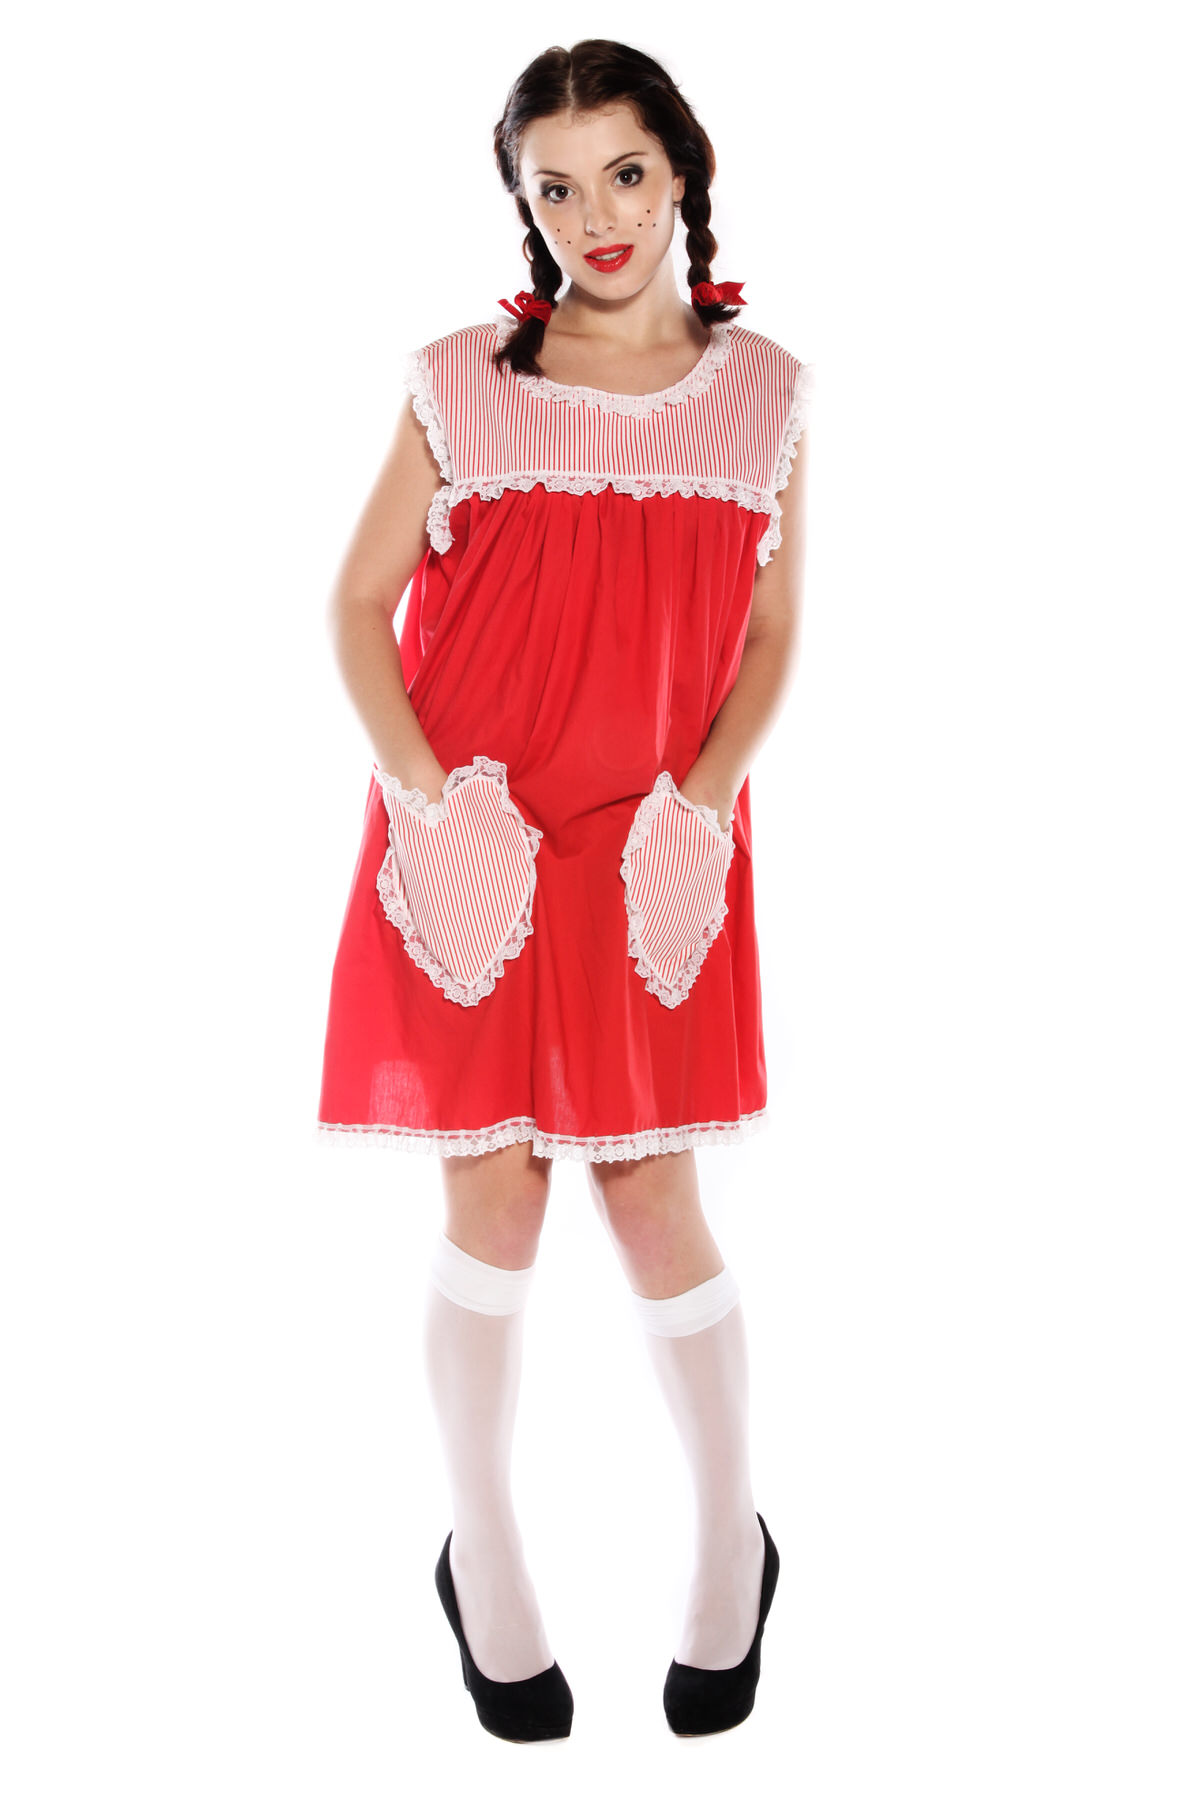 MARY JANE RAG DOLL COSTUME WITH WHITE SOCKS